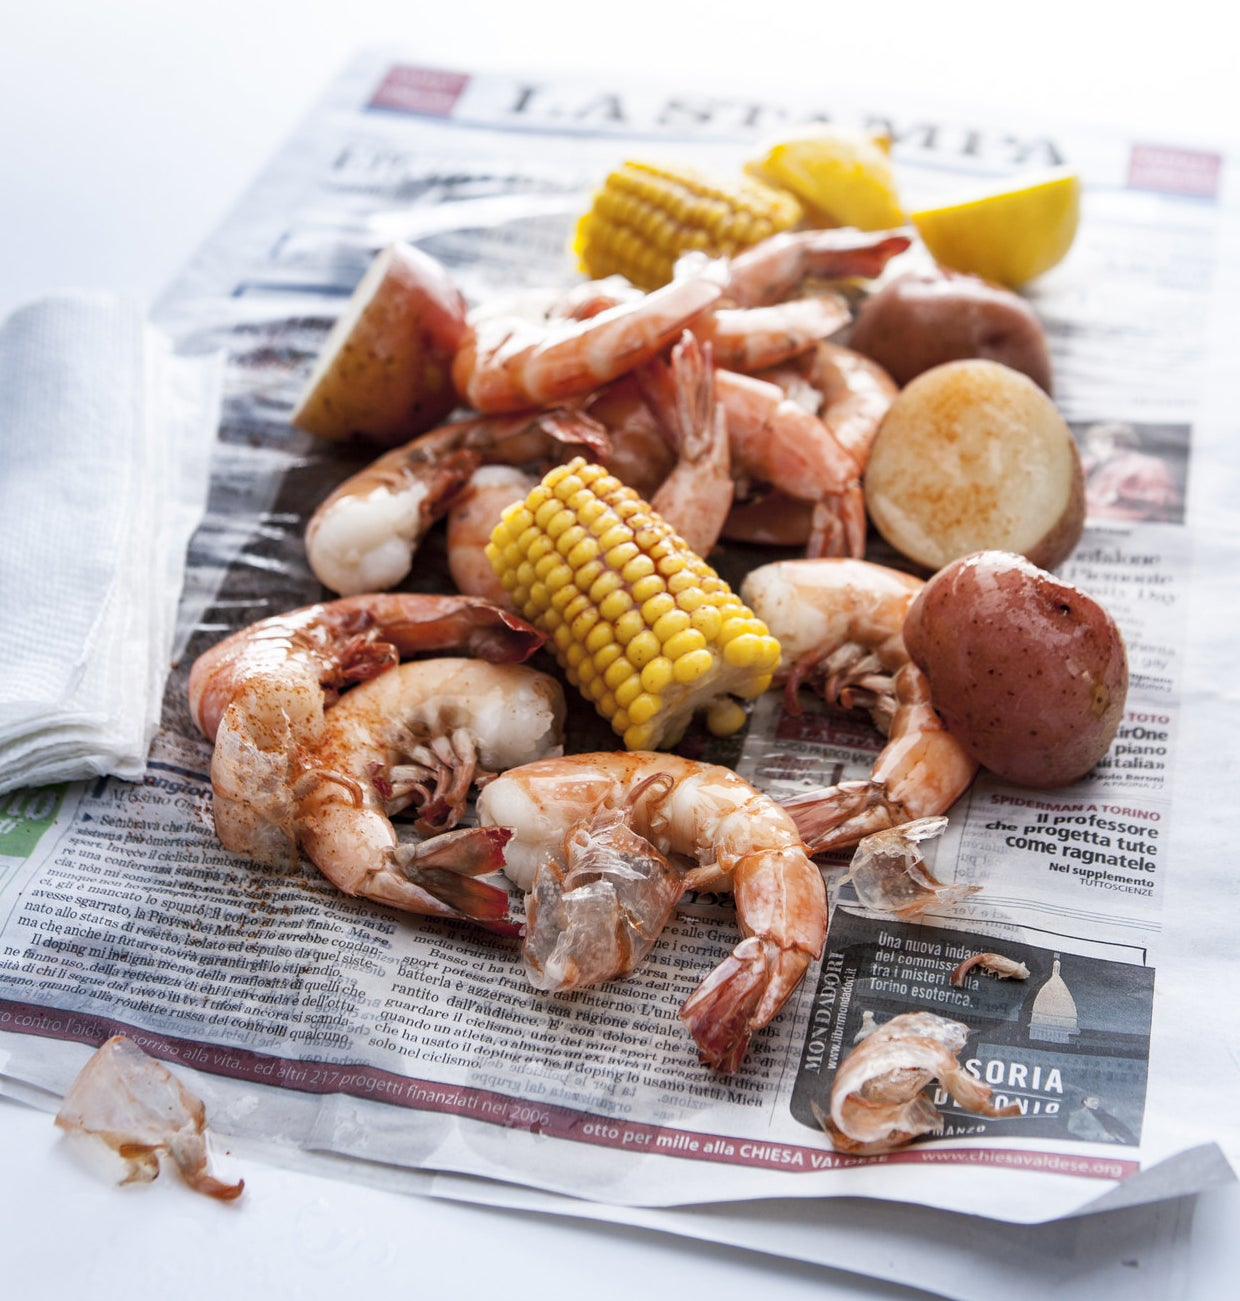 A lowcountry seafood boil.